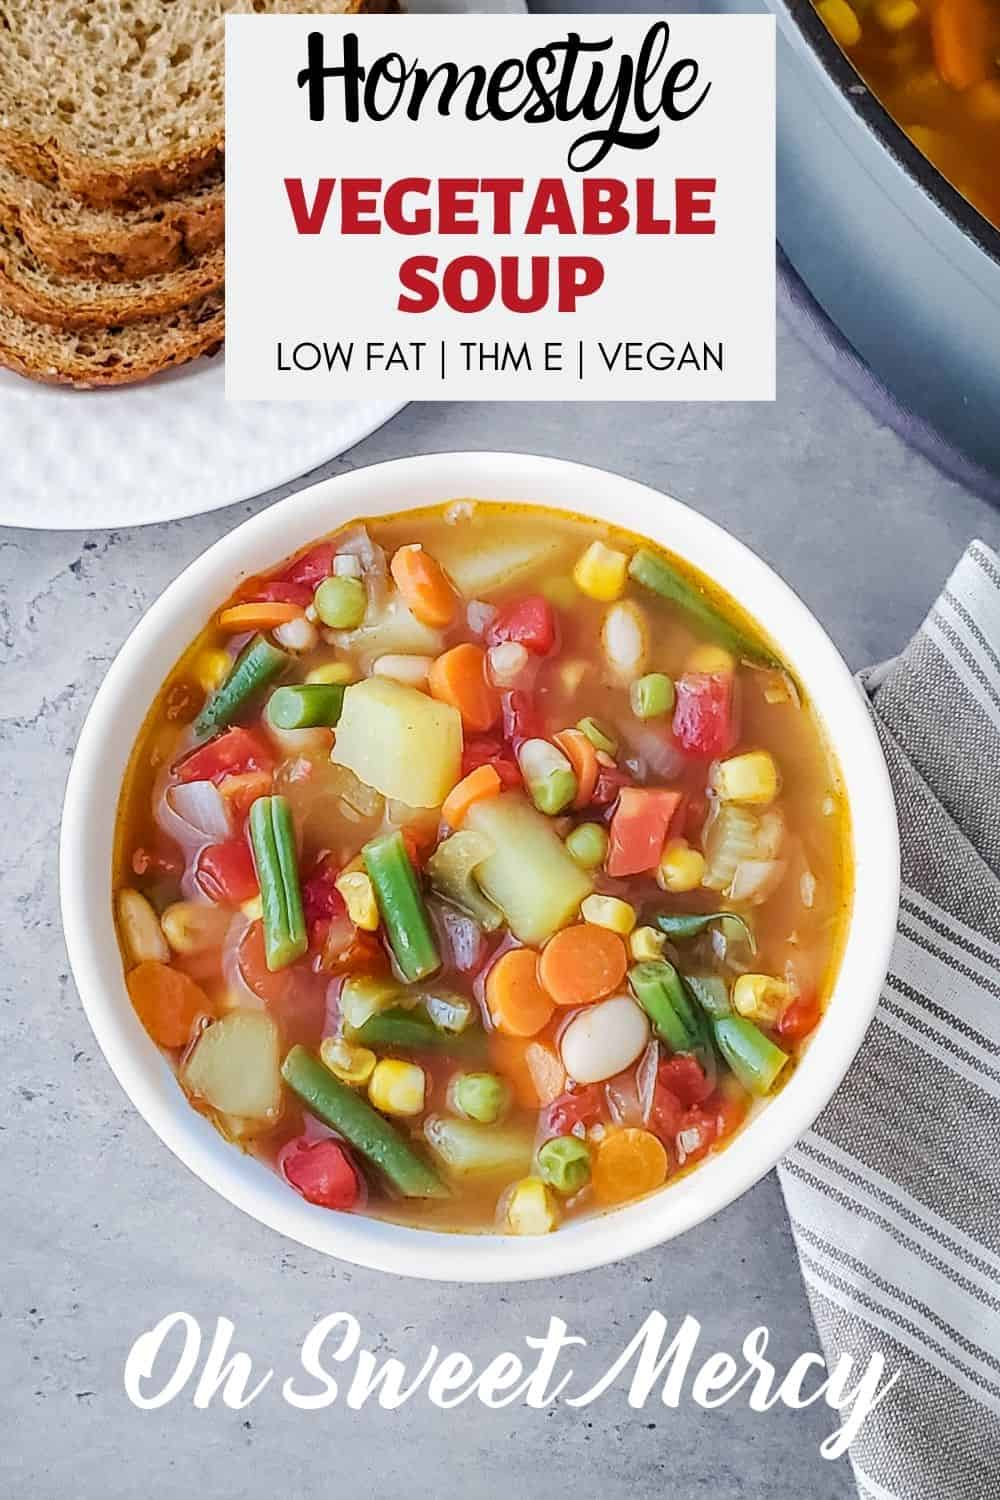 My Homestyle Vegetable Soup is packed with veggies and flavor but not fat! A healthy and delicious THM E soup, but easily tweaked to fit S or FP styles if needed. Up your plant-based meals game this year with this hearty and tasty veggie soup. #lowfat #healthycarbs #thm #vegan #vegetarian #homemade #soups